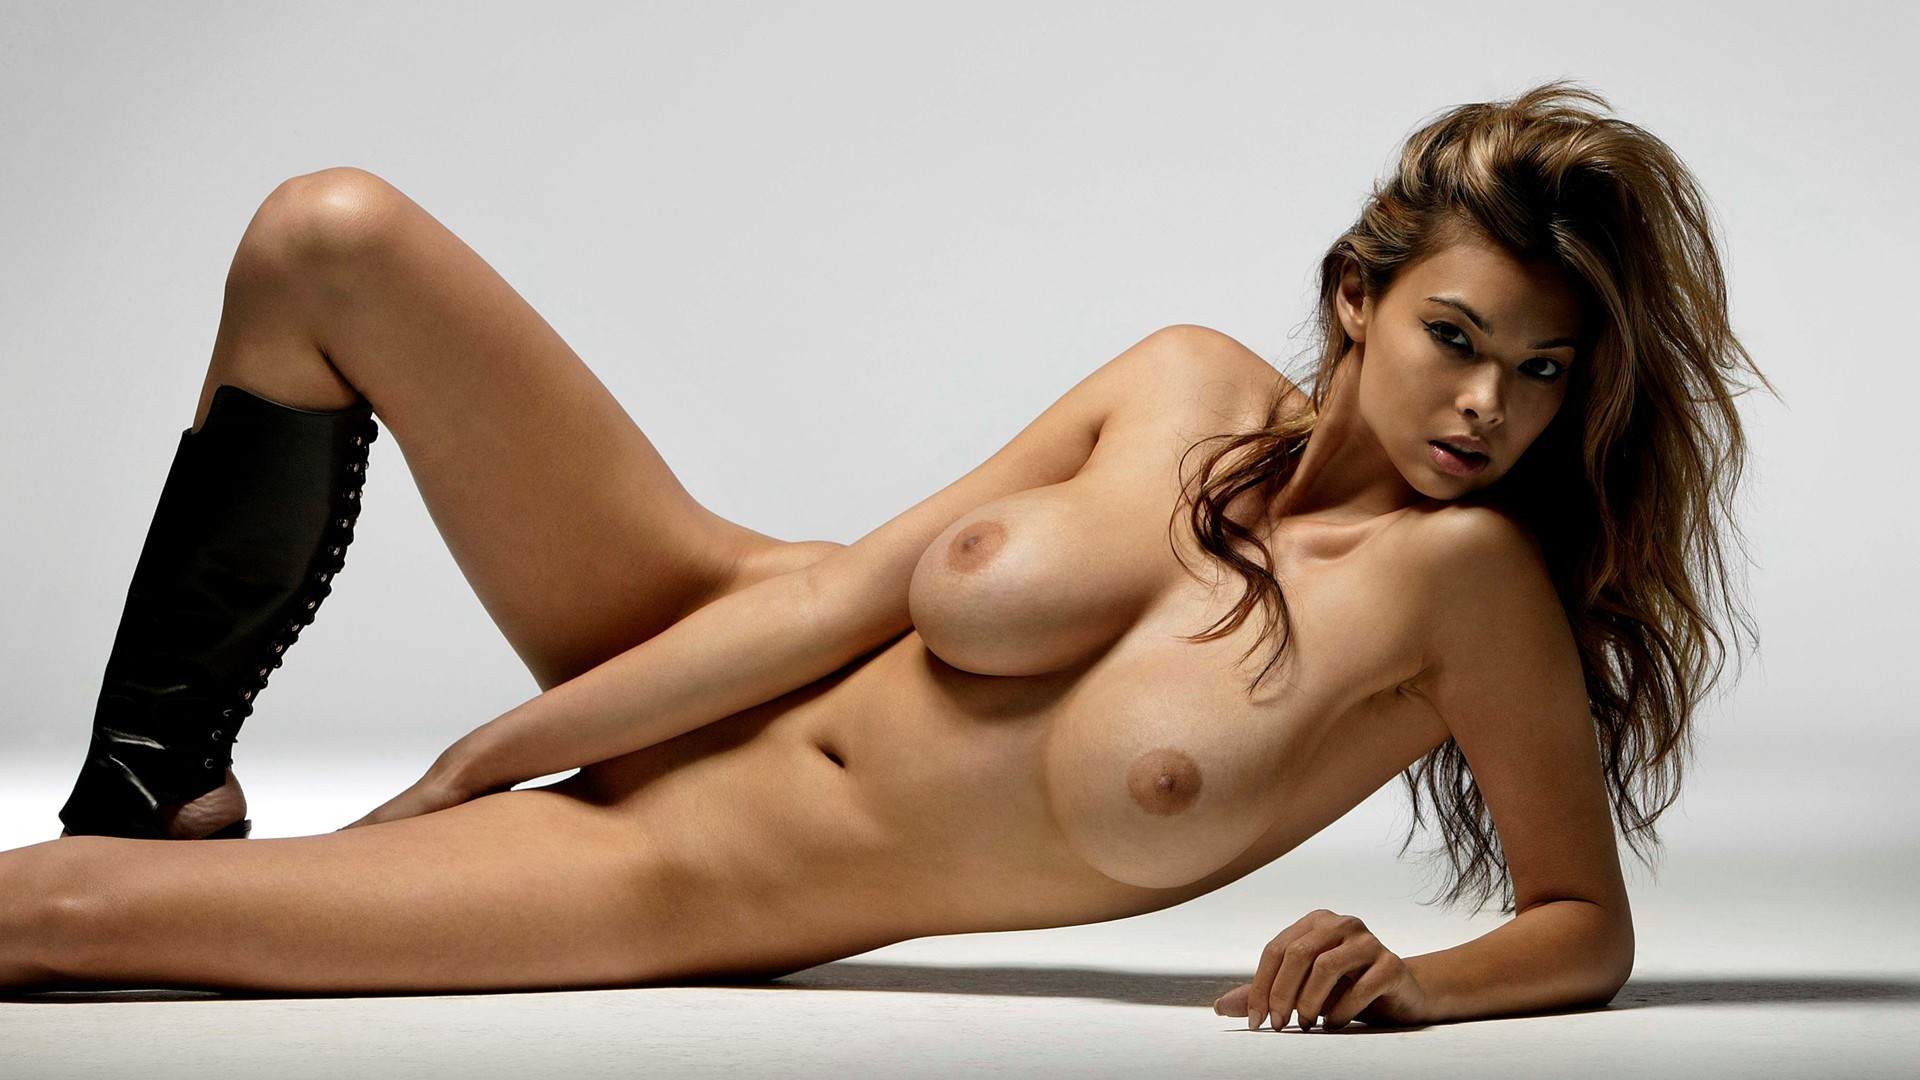 hot-babes-and-girls-naked-photos